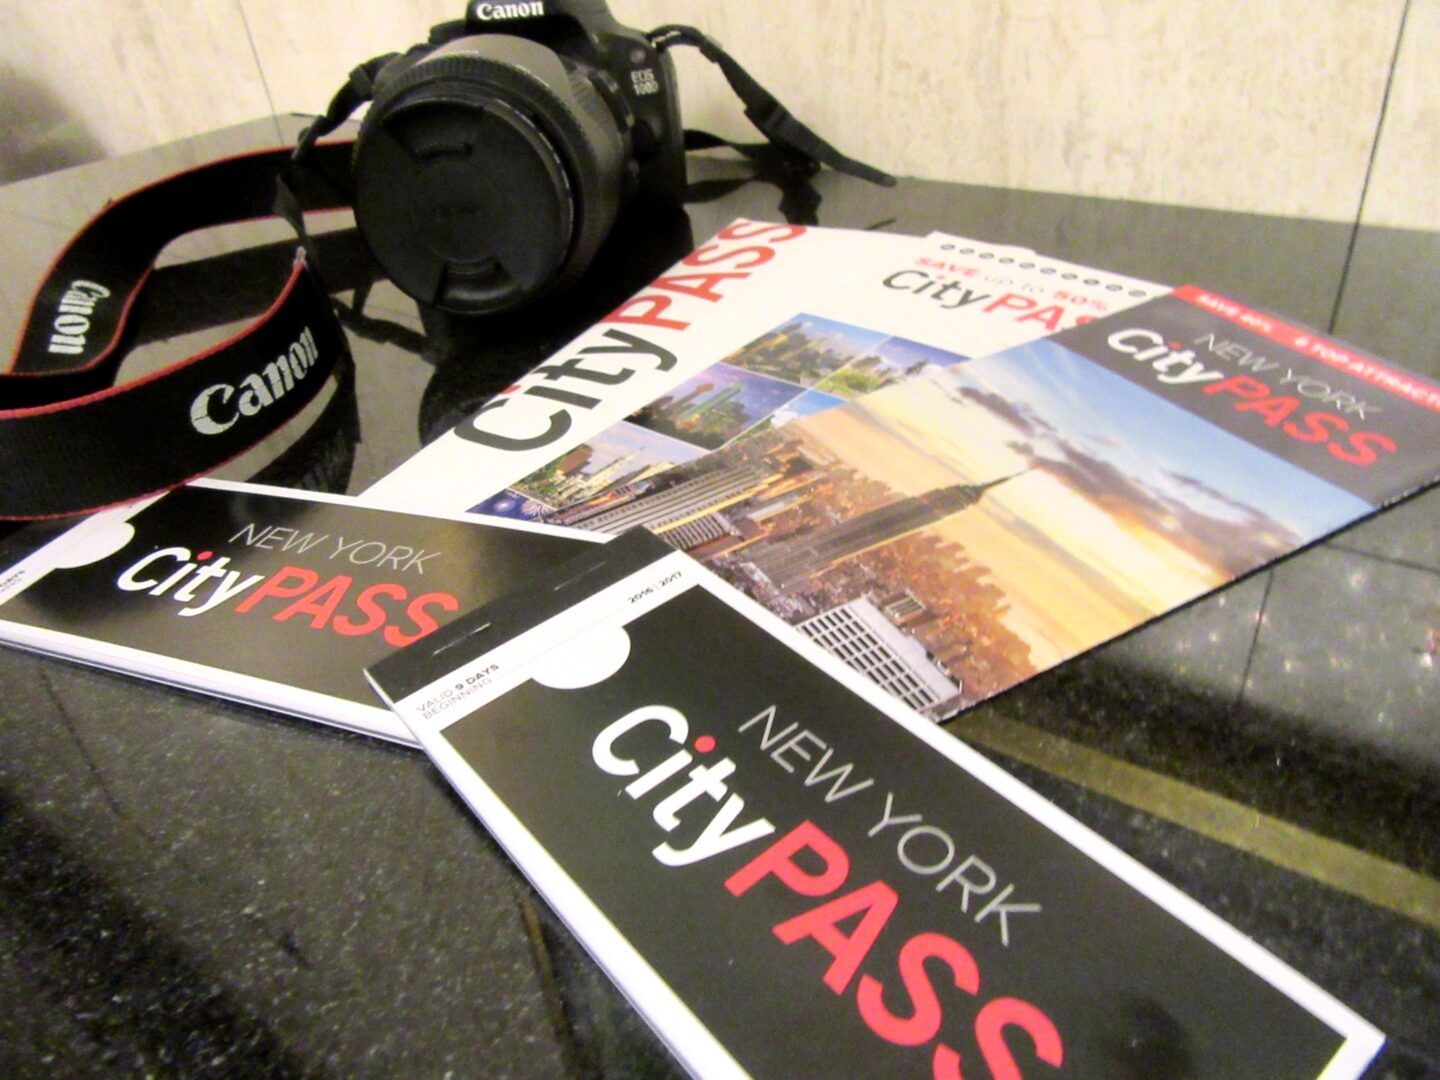 USA: 6 Of The Best in New York with CityPASS – Is It Worth It?